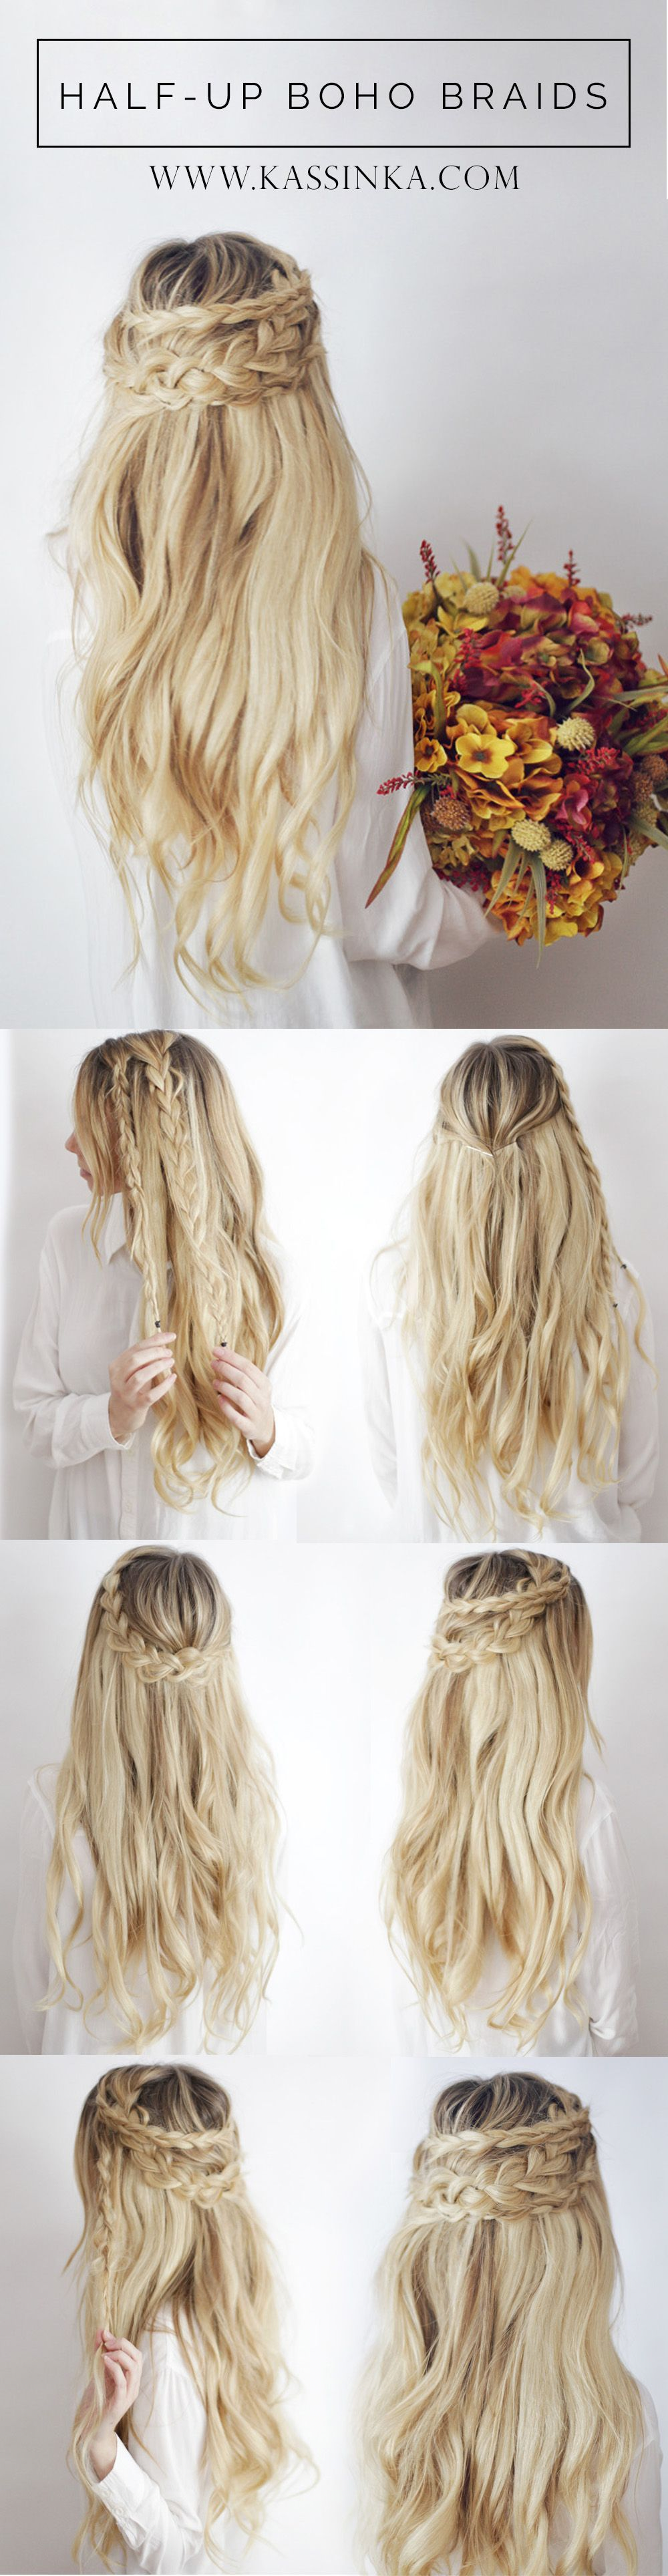 Halfup boho braids bridal hair when the day comes pinterest